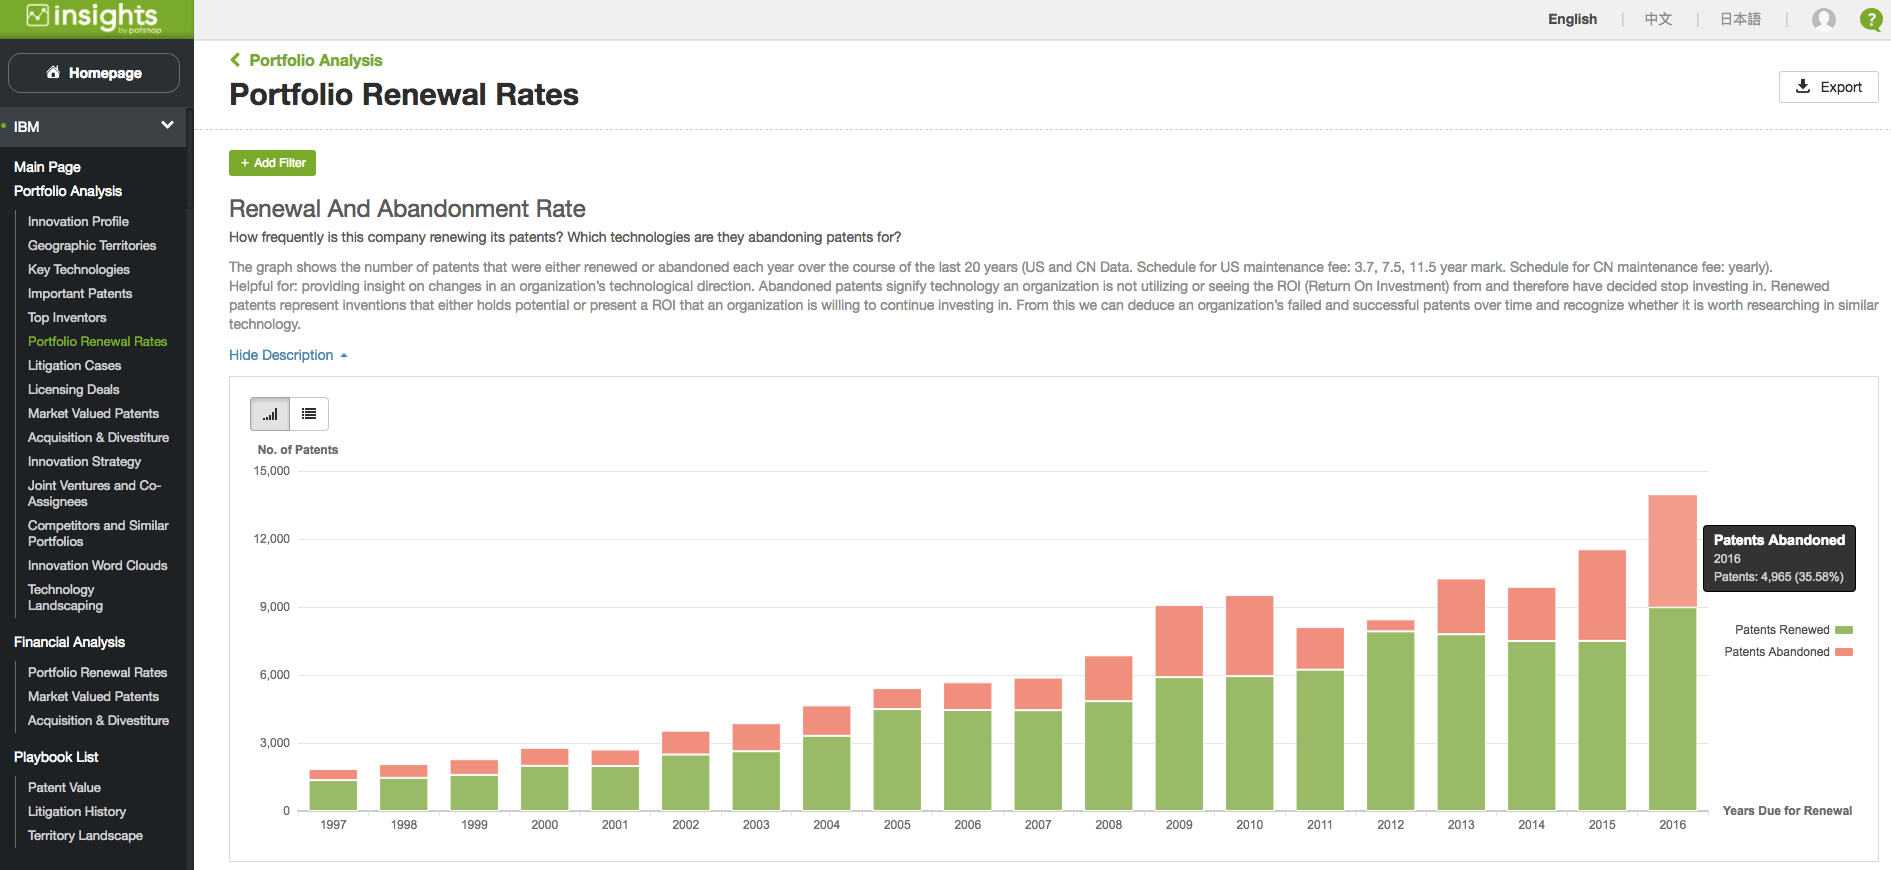 IBM patent filing and abandonment rates